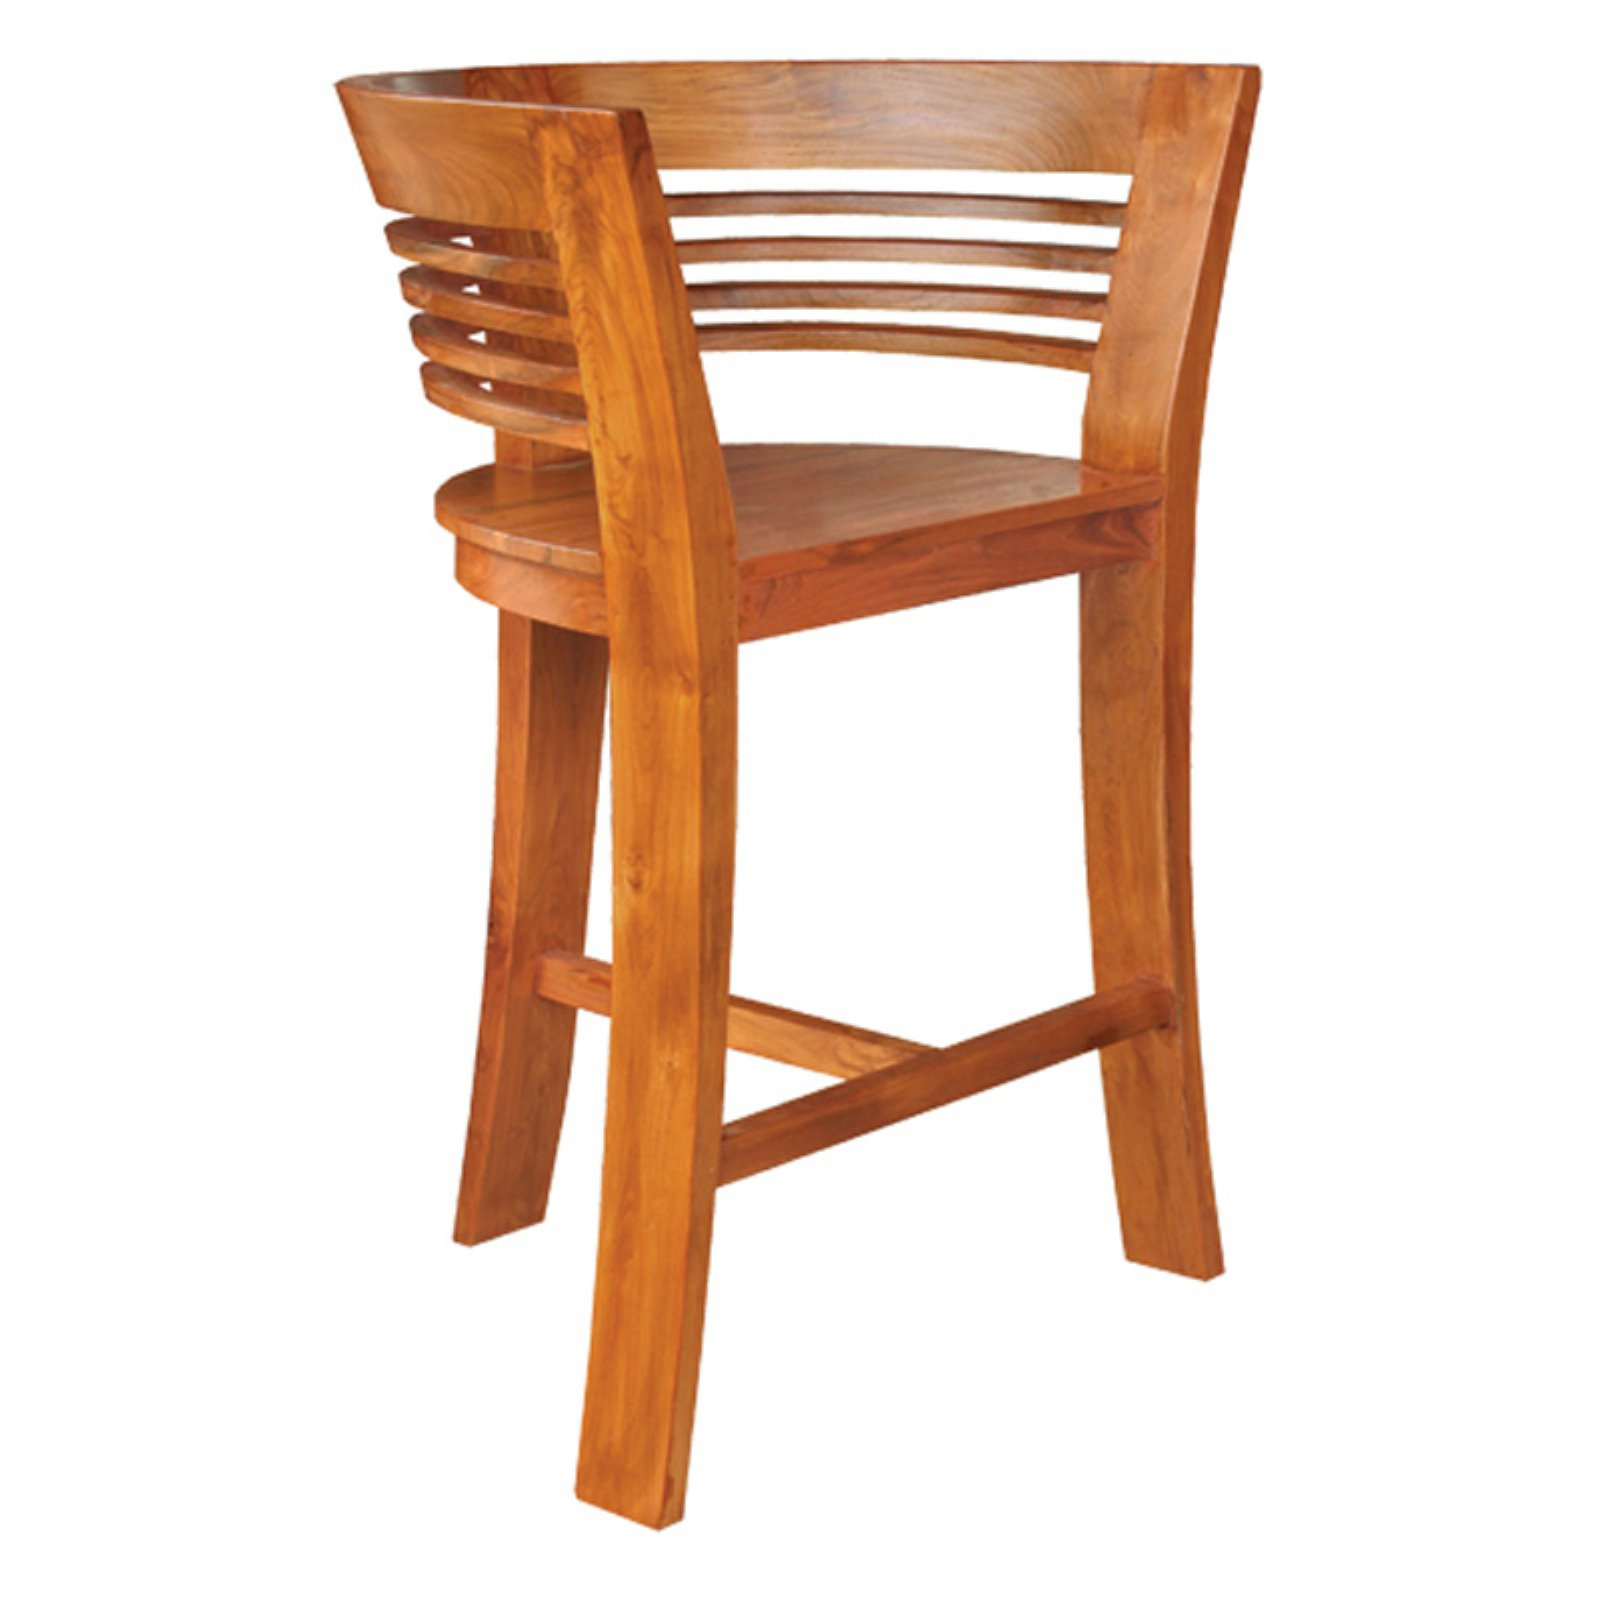 Chic Teak Half Moon Waxed Teak Outdoor Barstool